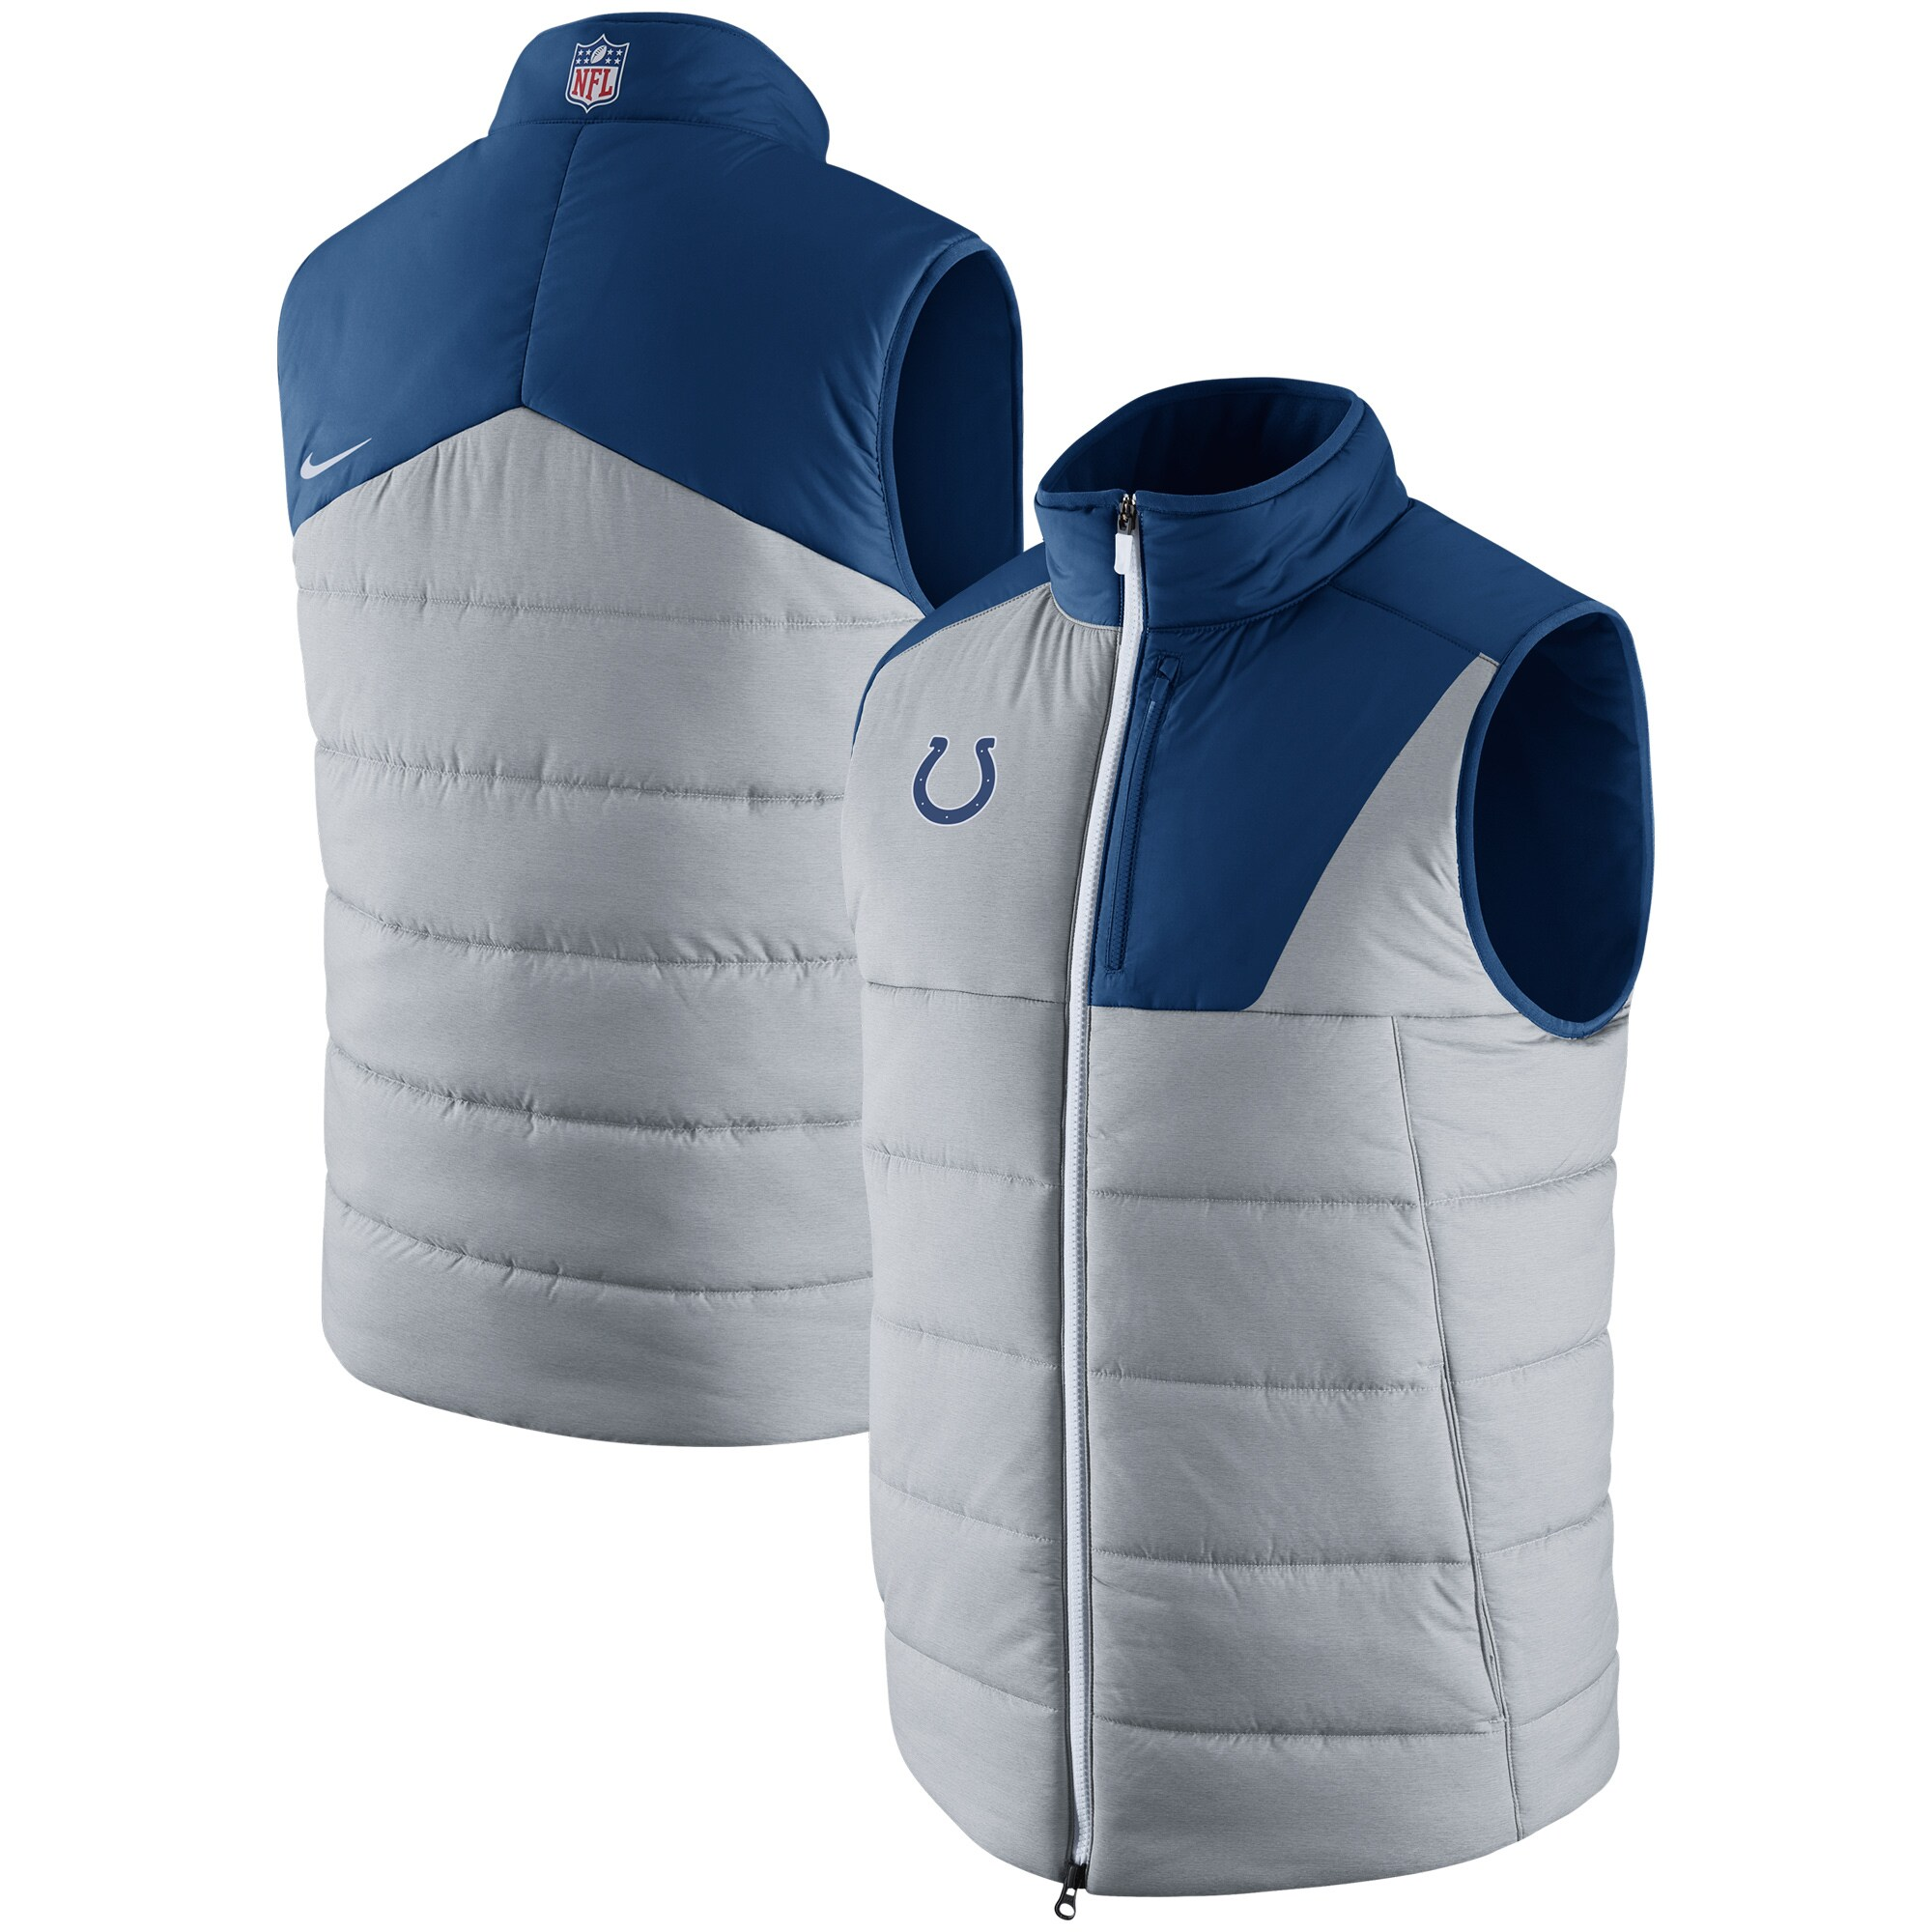 Indianapolis Colts Nike Champ Drive Vest - Heathered Gray